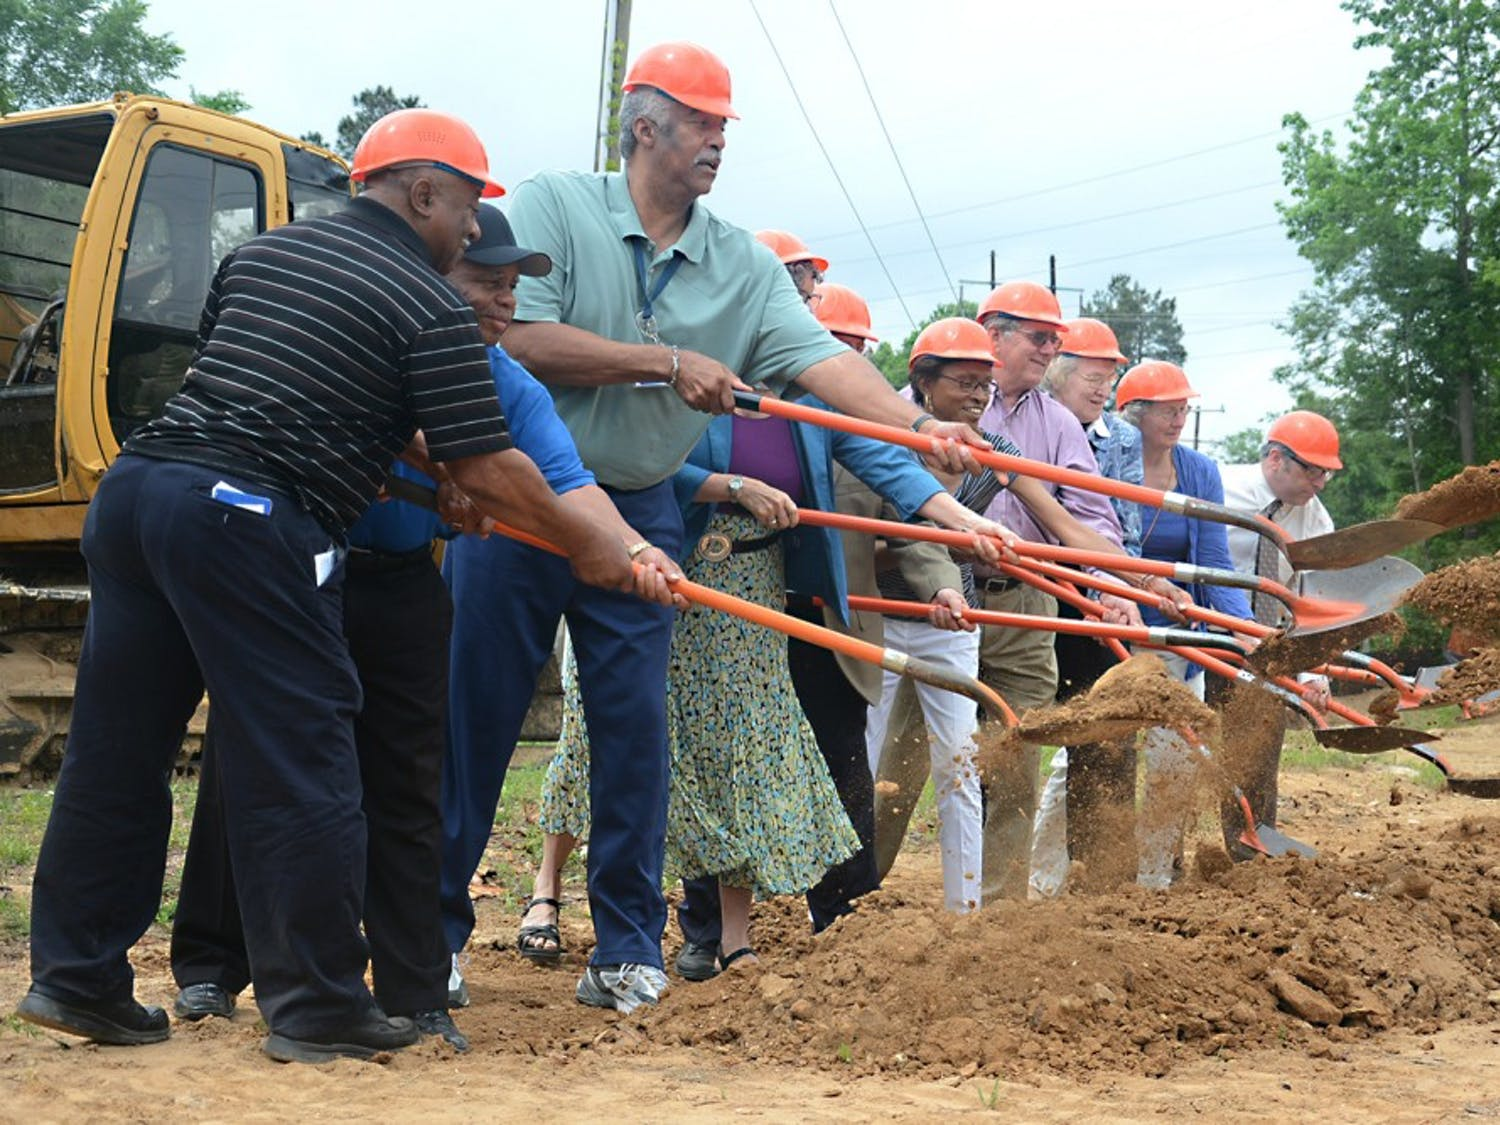 Leaders of the Orange County community break ground at the site of the new community building on Rogers Road.